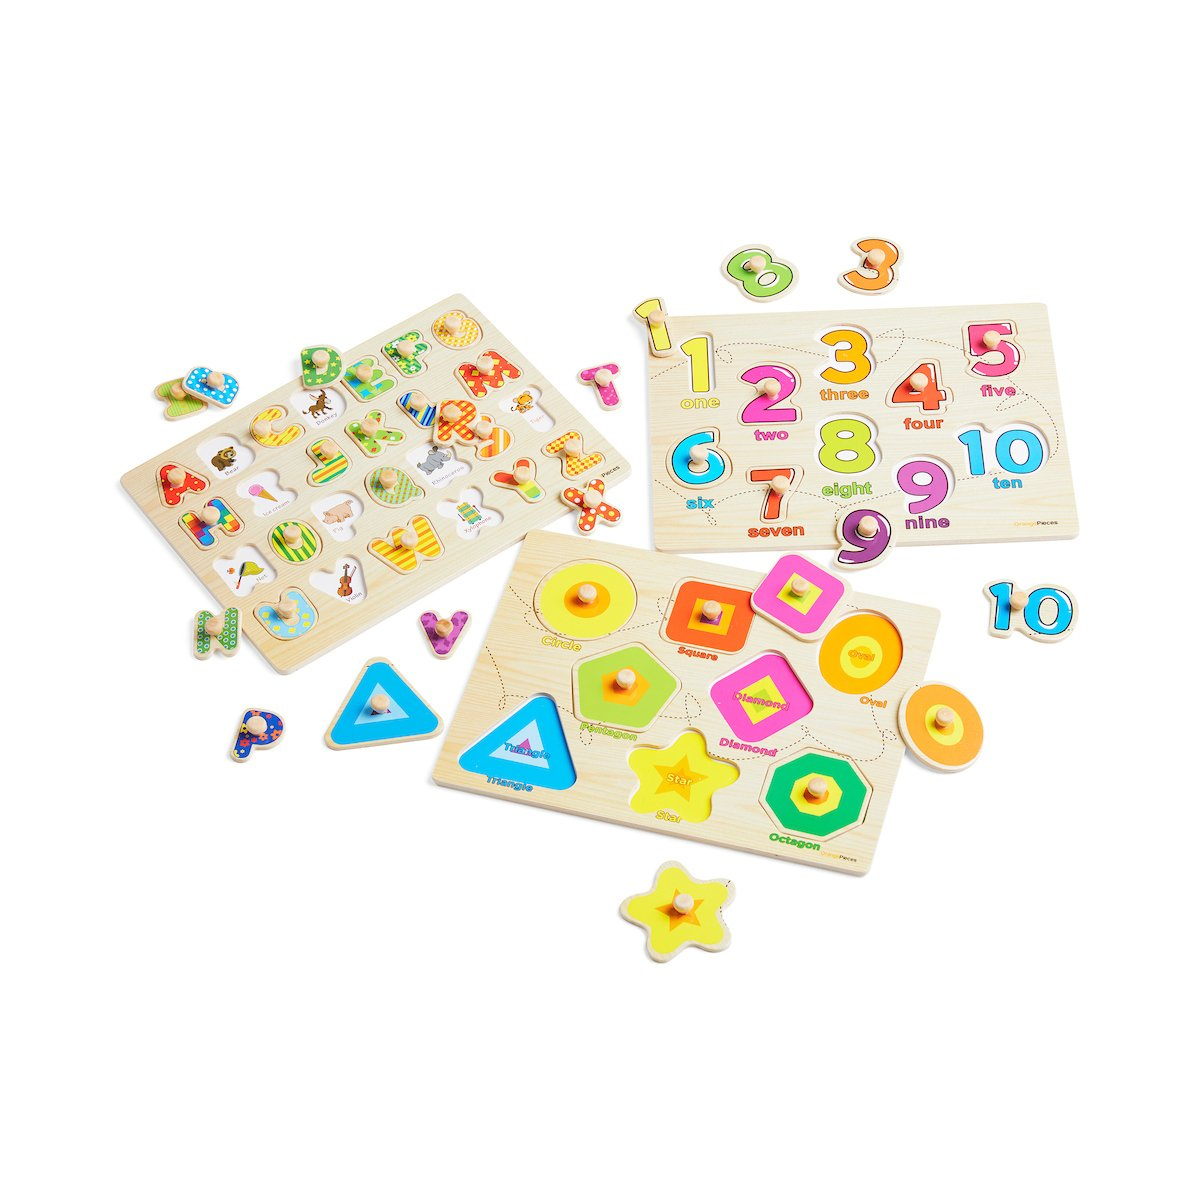 Wooden Peg Puzzle for toddlers - 3 Piece puzzle set for kids - Alphabet ABC, Numbers and Shapes Toy - Perfect pegged puzzles for kid learning letters, number, shape board puzzles for toddler ages 3+ by Orange Pieces (Image #2)